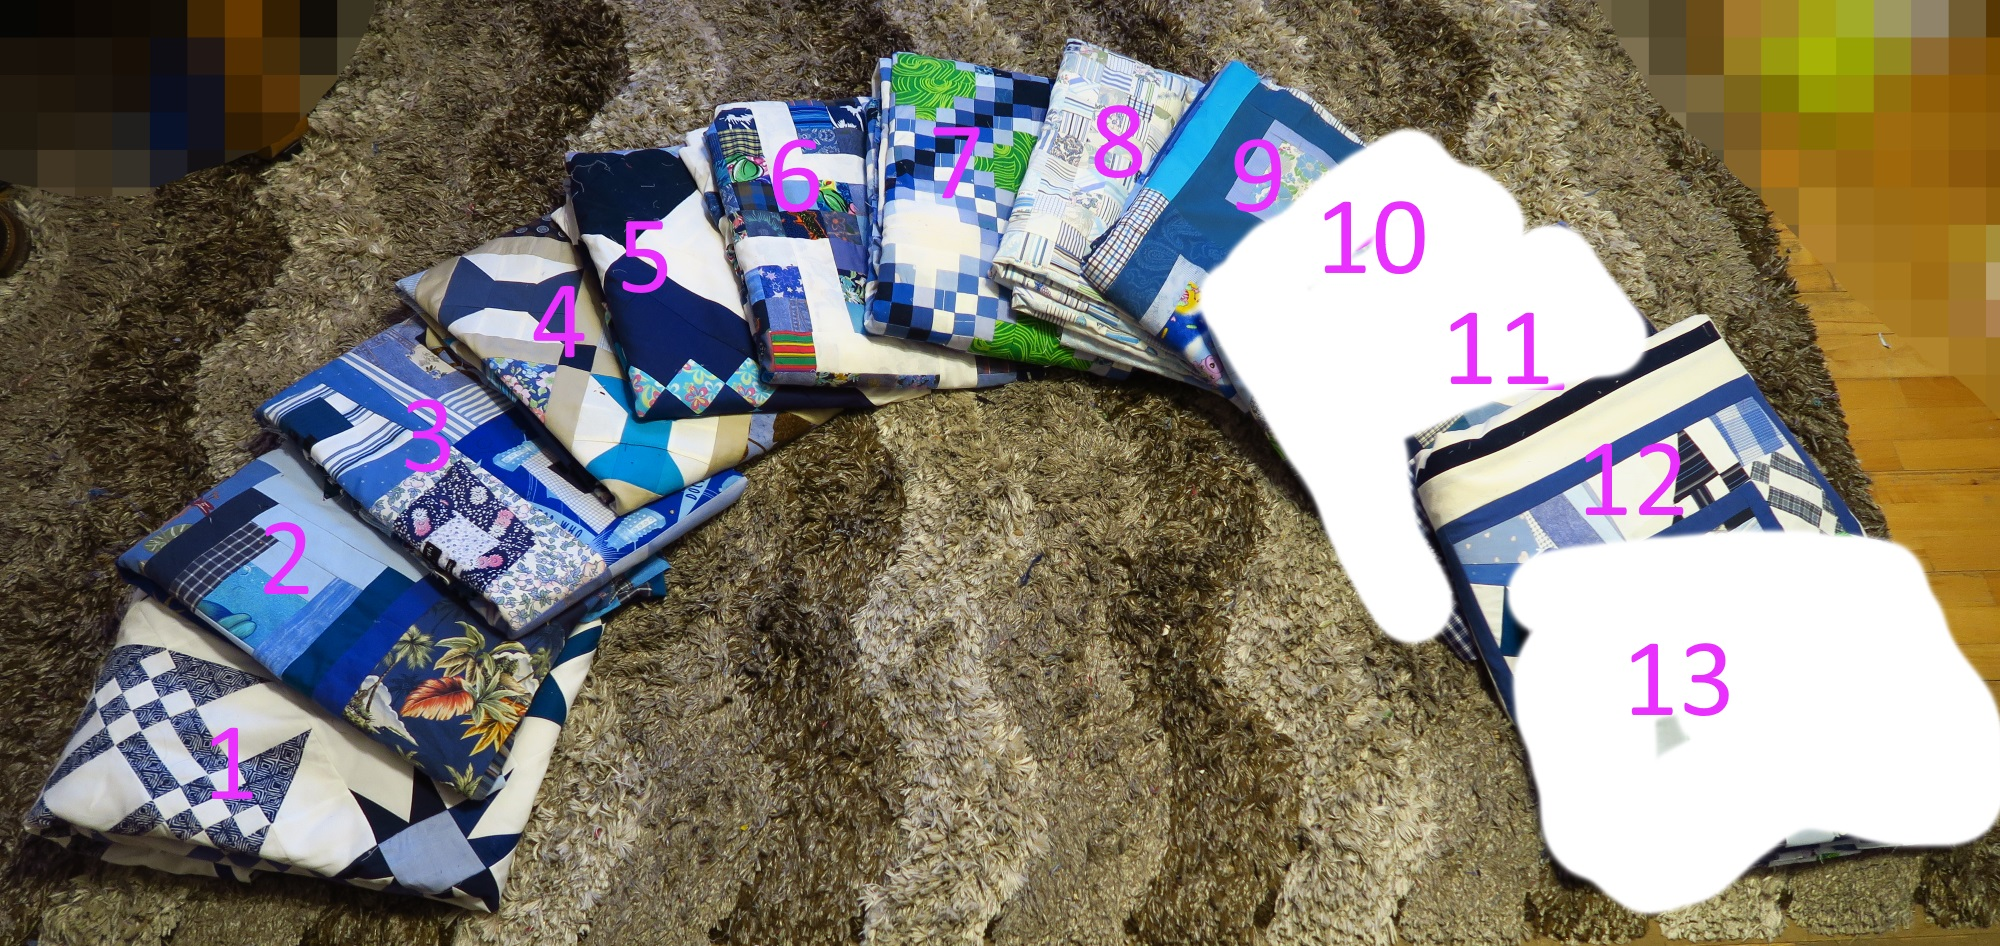 From left: 1. Starring Monkey Wrenches, 2. Periscope, 3. Premium Labels, 4. Peek-A-Boo, 5. Granny's Checkerboard, 6. Scrappy Rail Fence, 7. Triple Irish Delight, 8. Make Ya Look - at Blues, 9. Frisky Boxes, 10. TBA (to be announced), 11. TBA, 12. All Crumbled Up, 13. TBA.